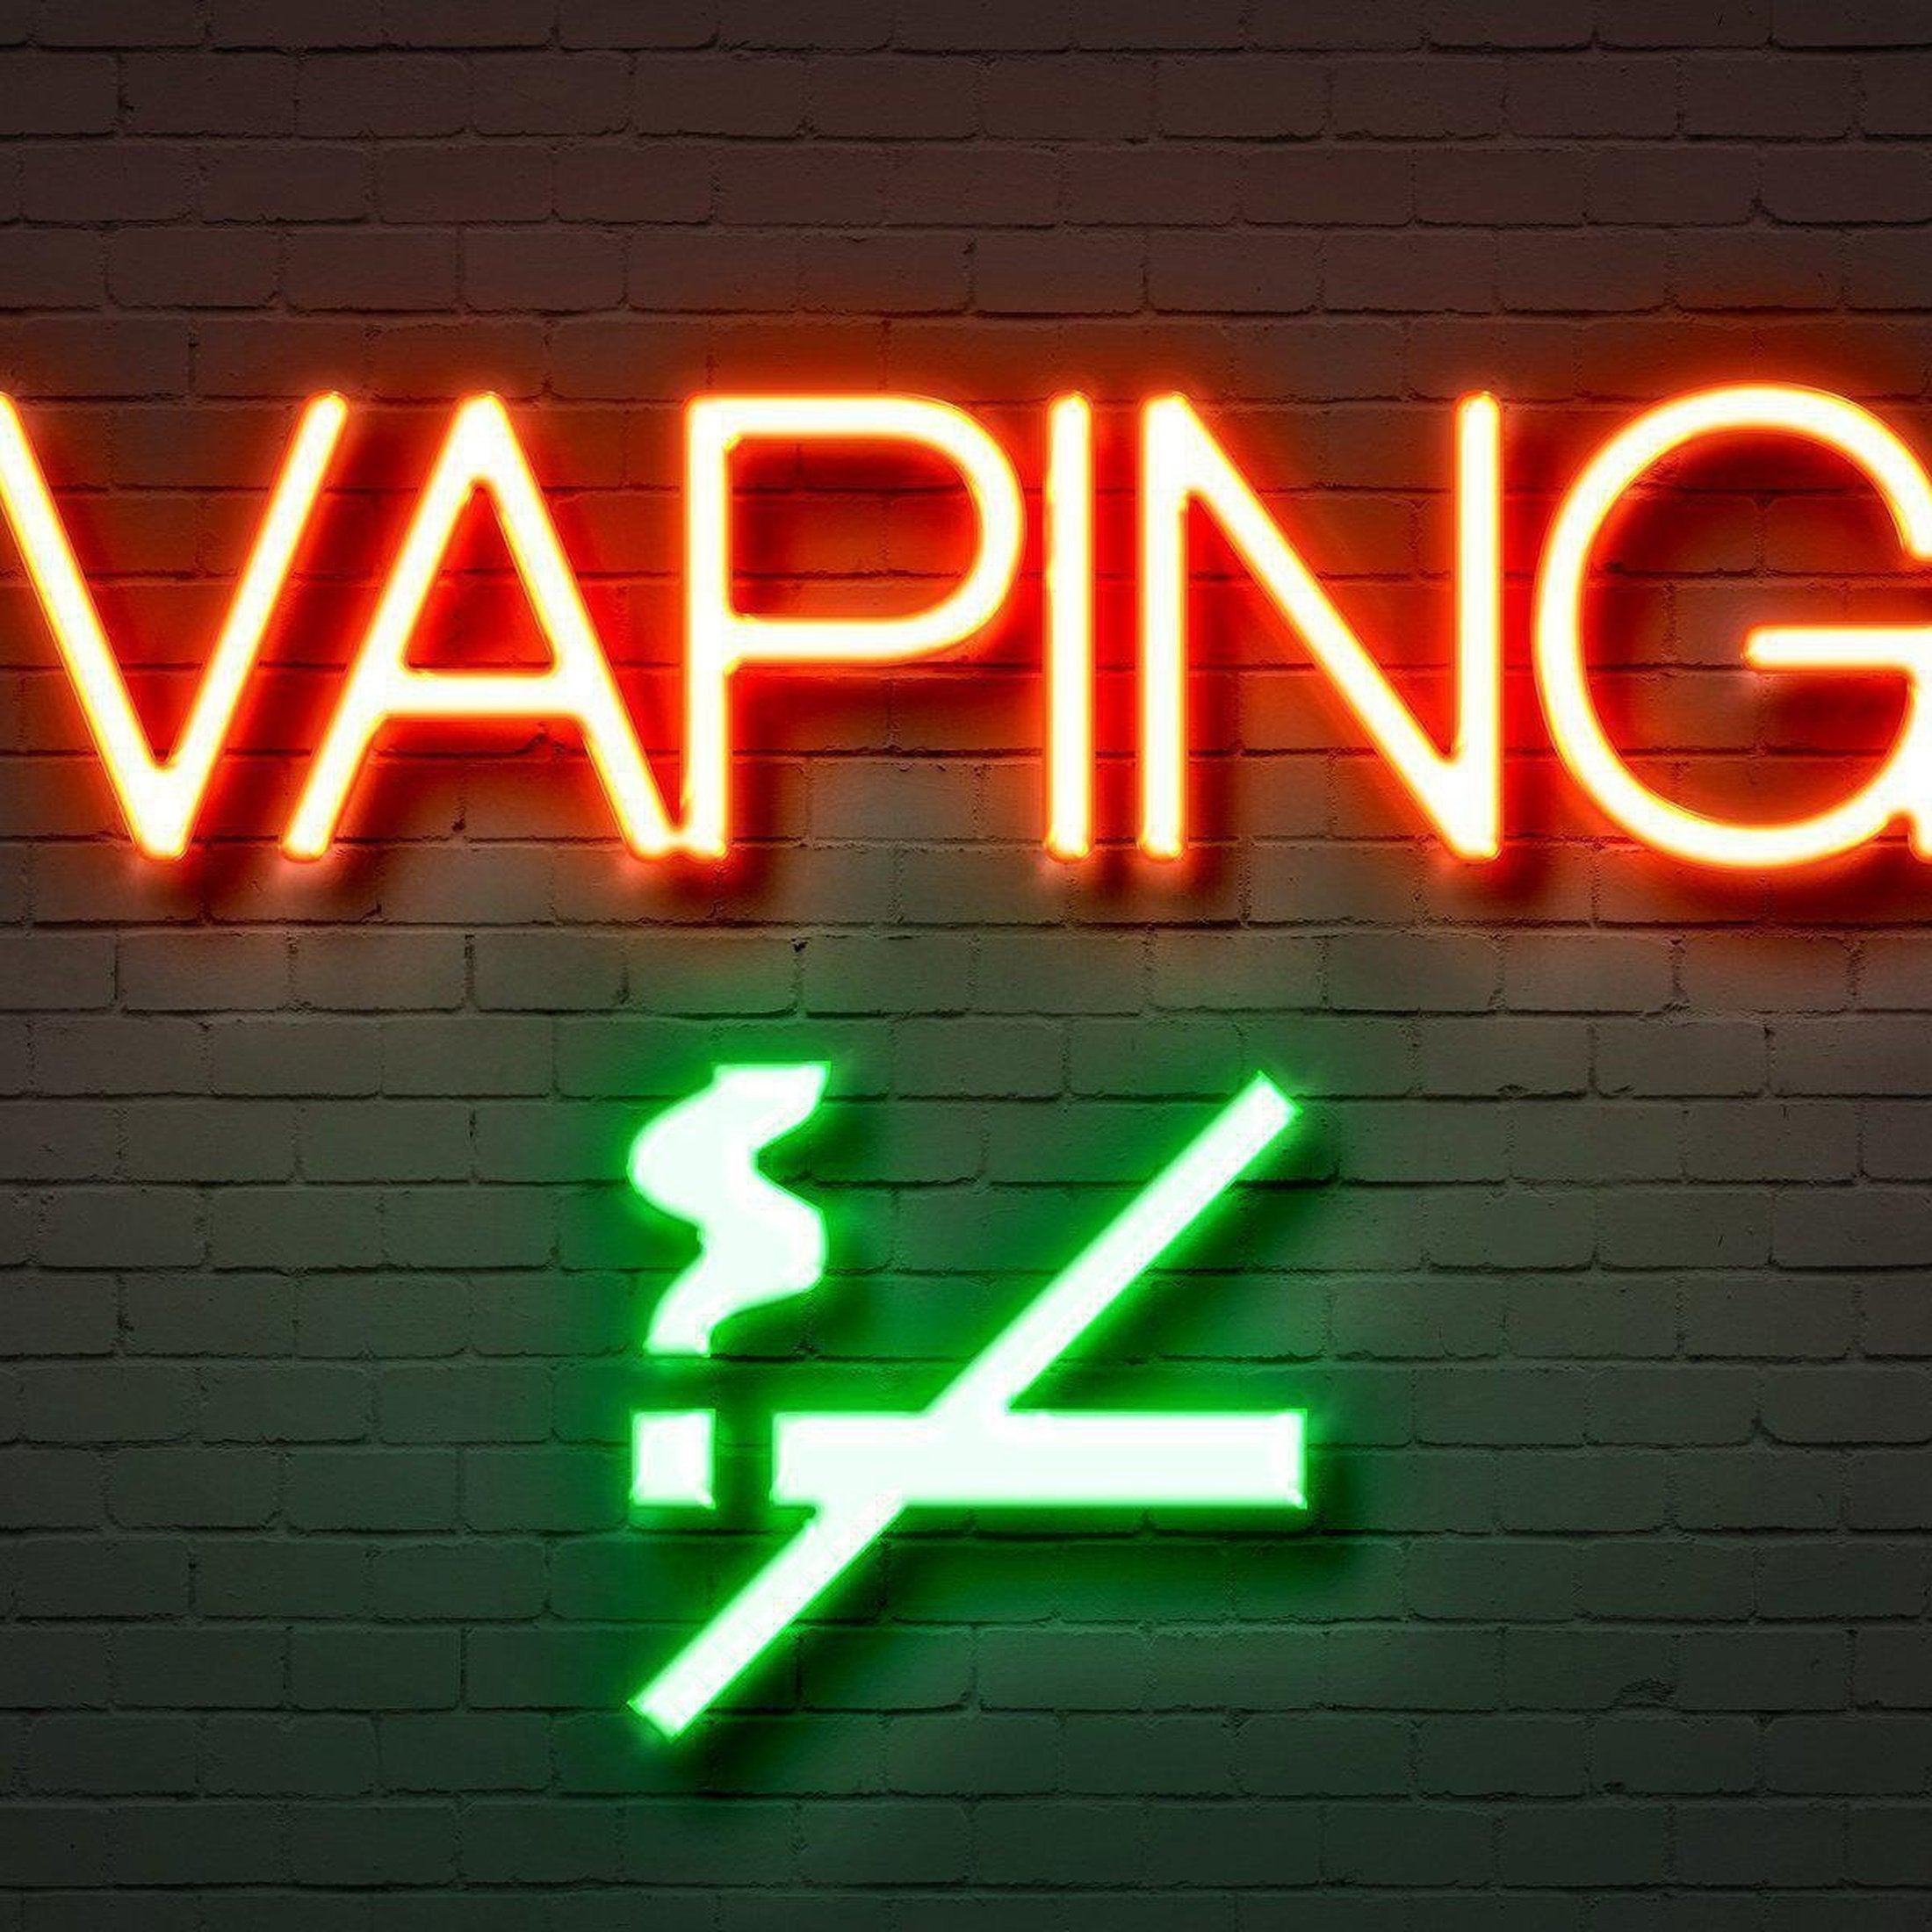 Healthier Habits: Why You Should Market Your Vape Shop to People Who Want to Quit Smoking